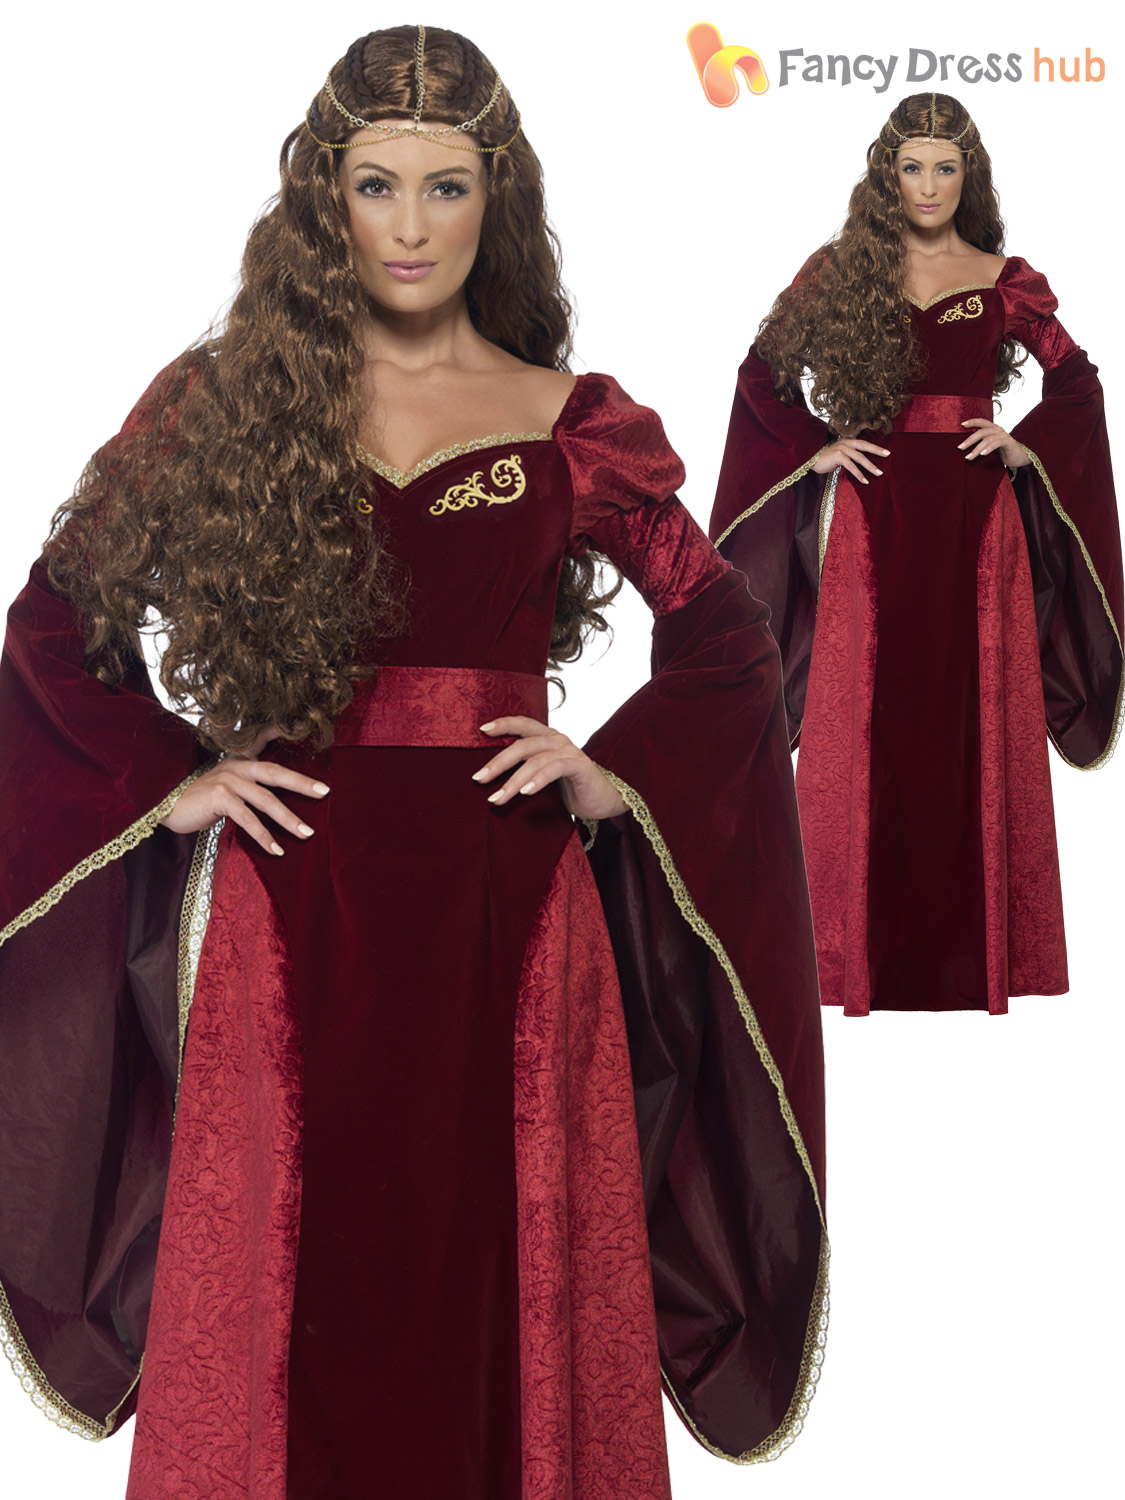 FDS27877_ebay3 size 8 22 ladies medieval queen costume womens tudor game of,Ebay Womens Clothing Size 8